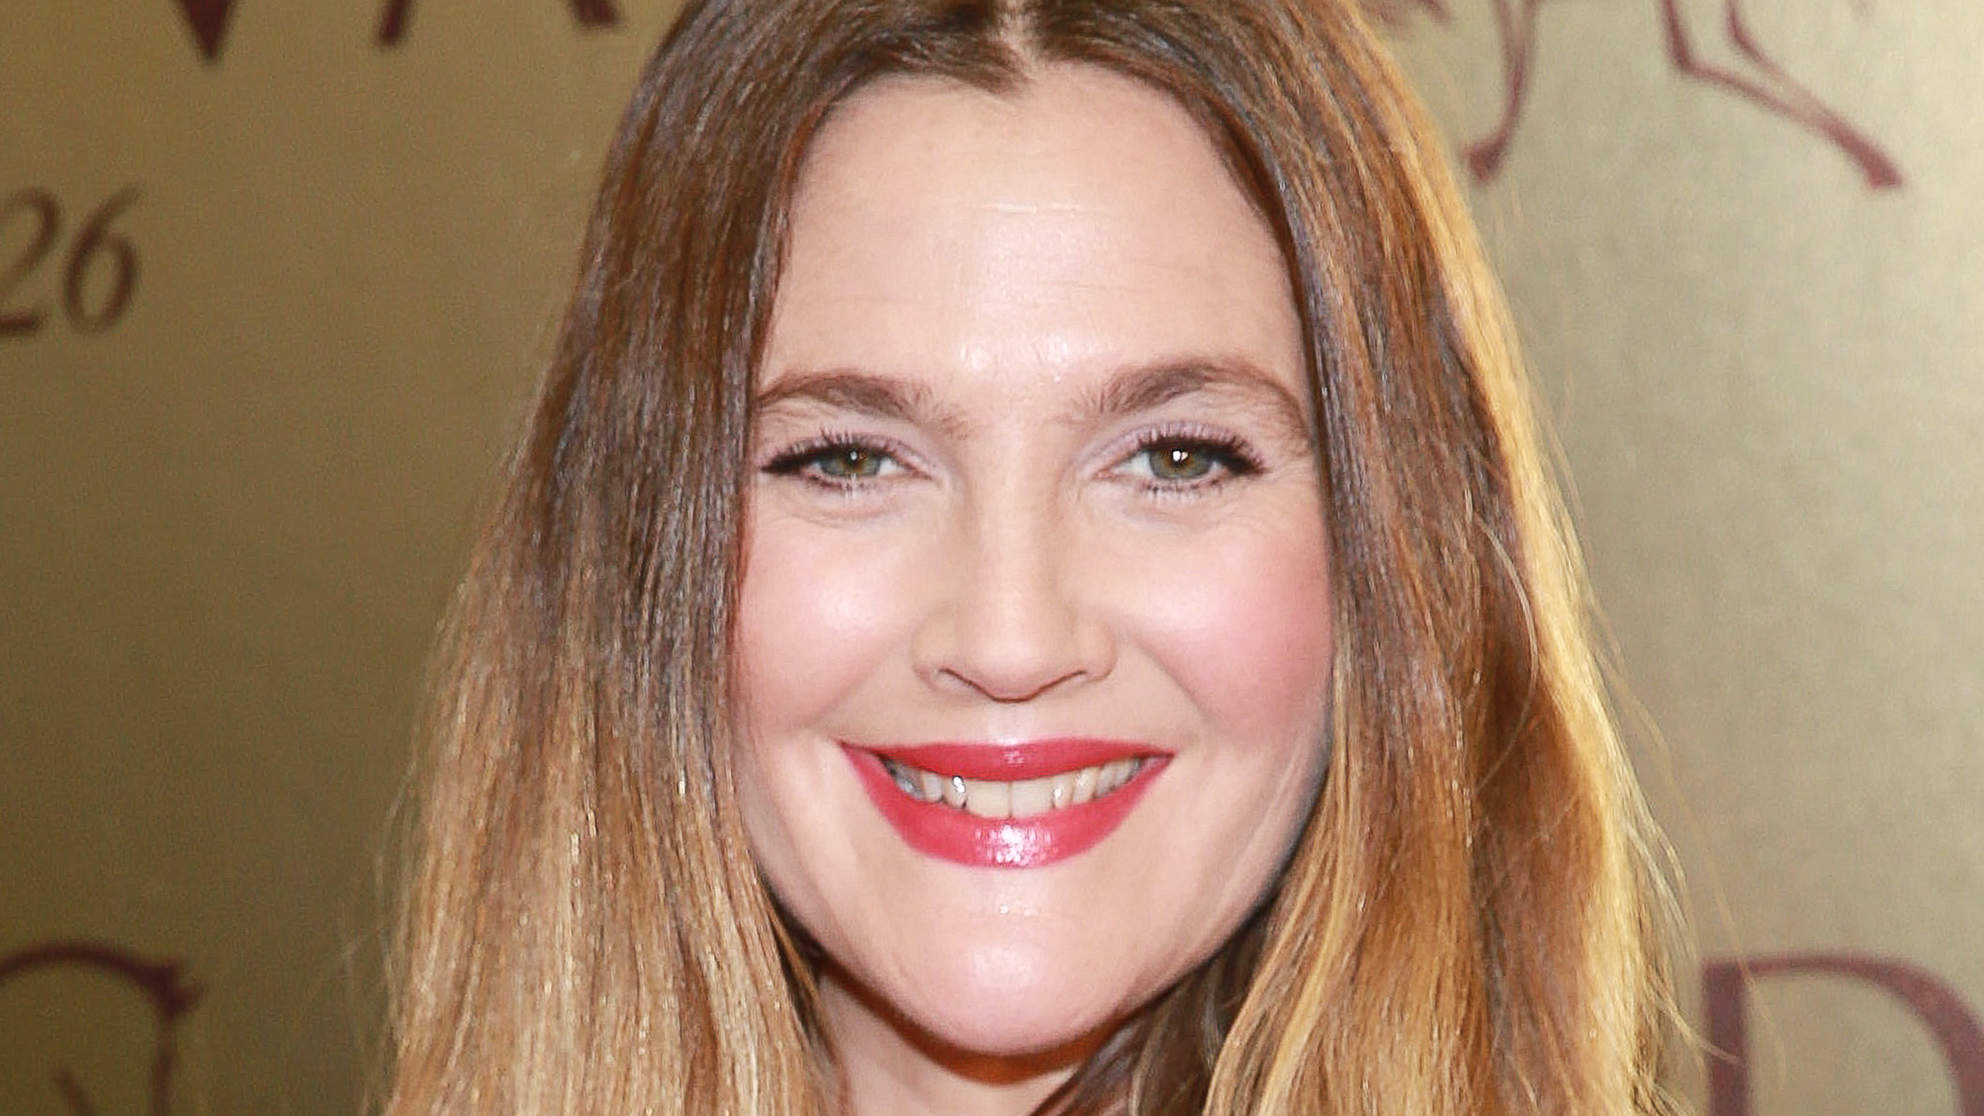 Clone of Clone of Clone of Drew Barrymore Has a Secret for Whitening Tea-Stained Teeth